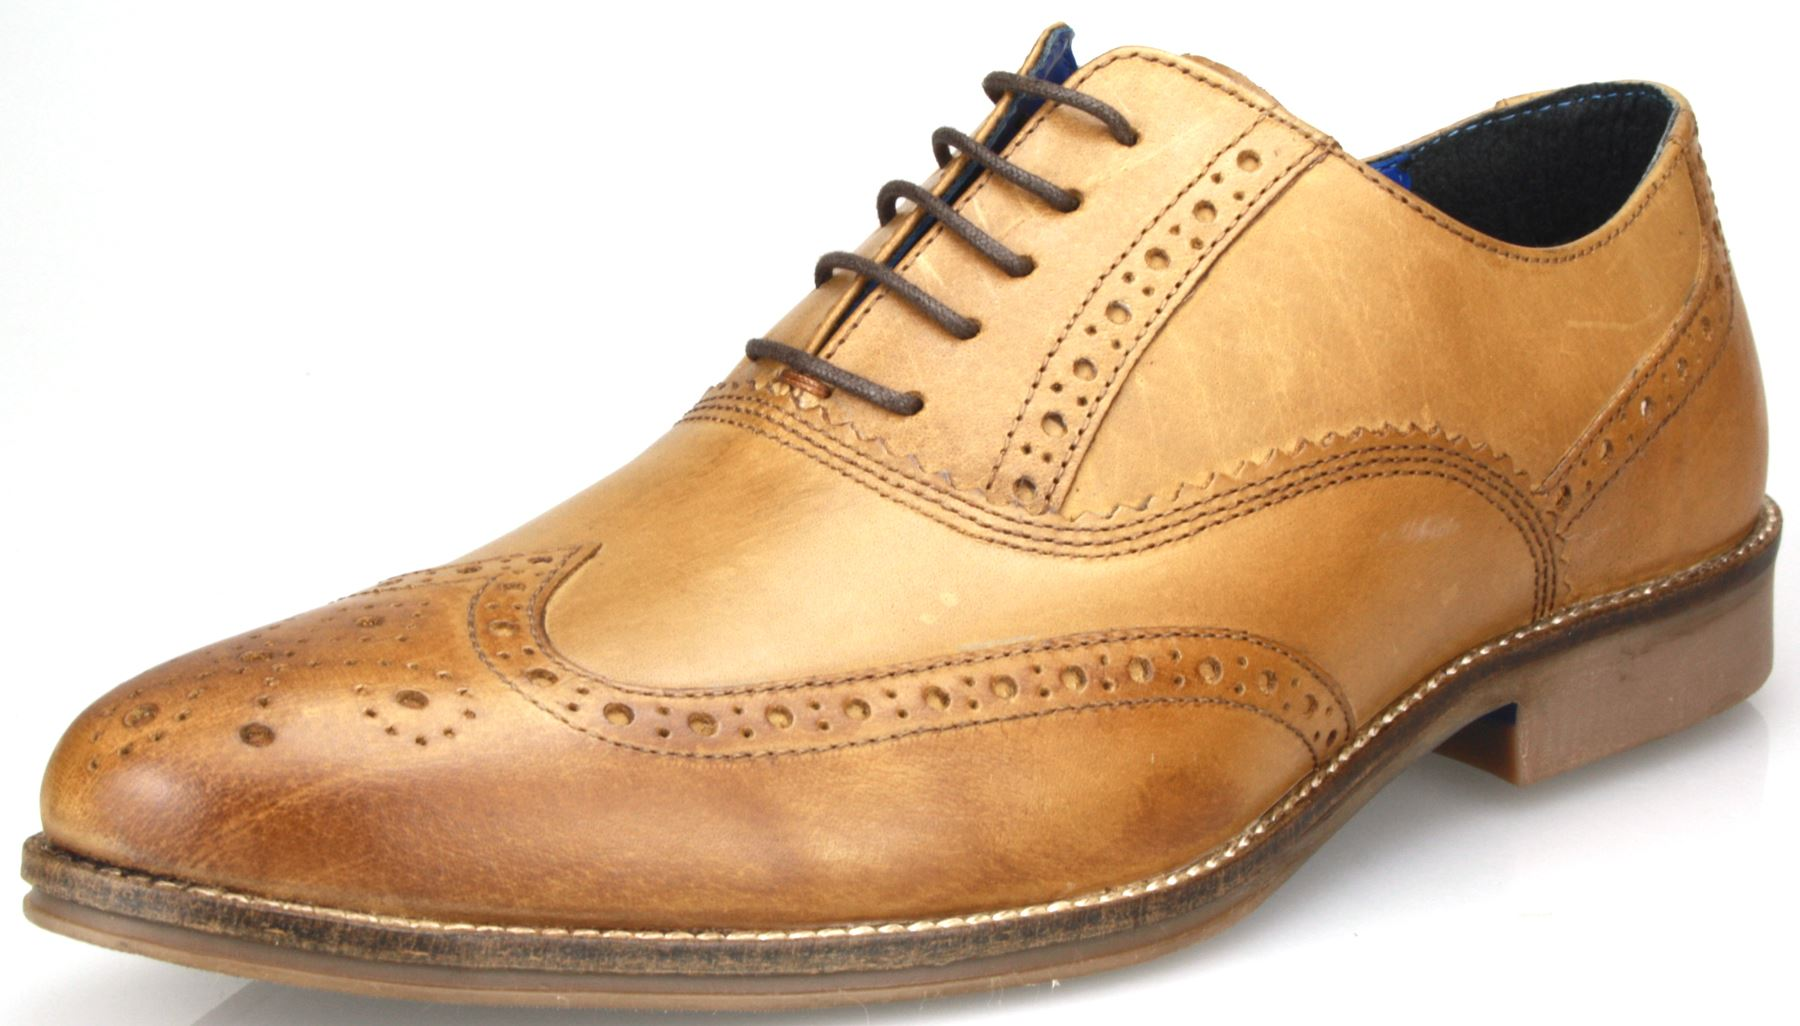 mens leather formal brogues lace up shoes in